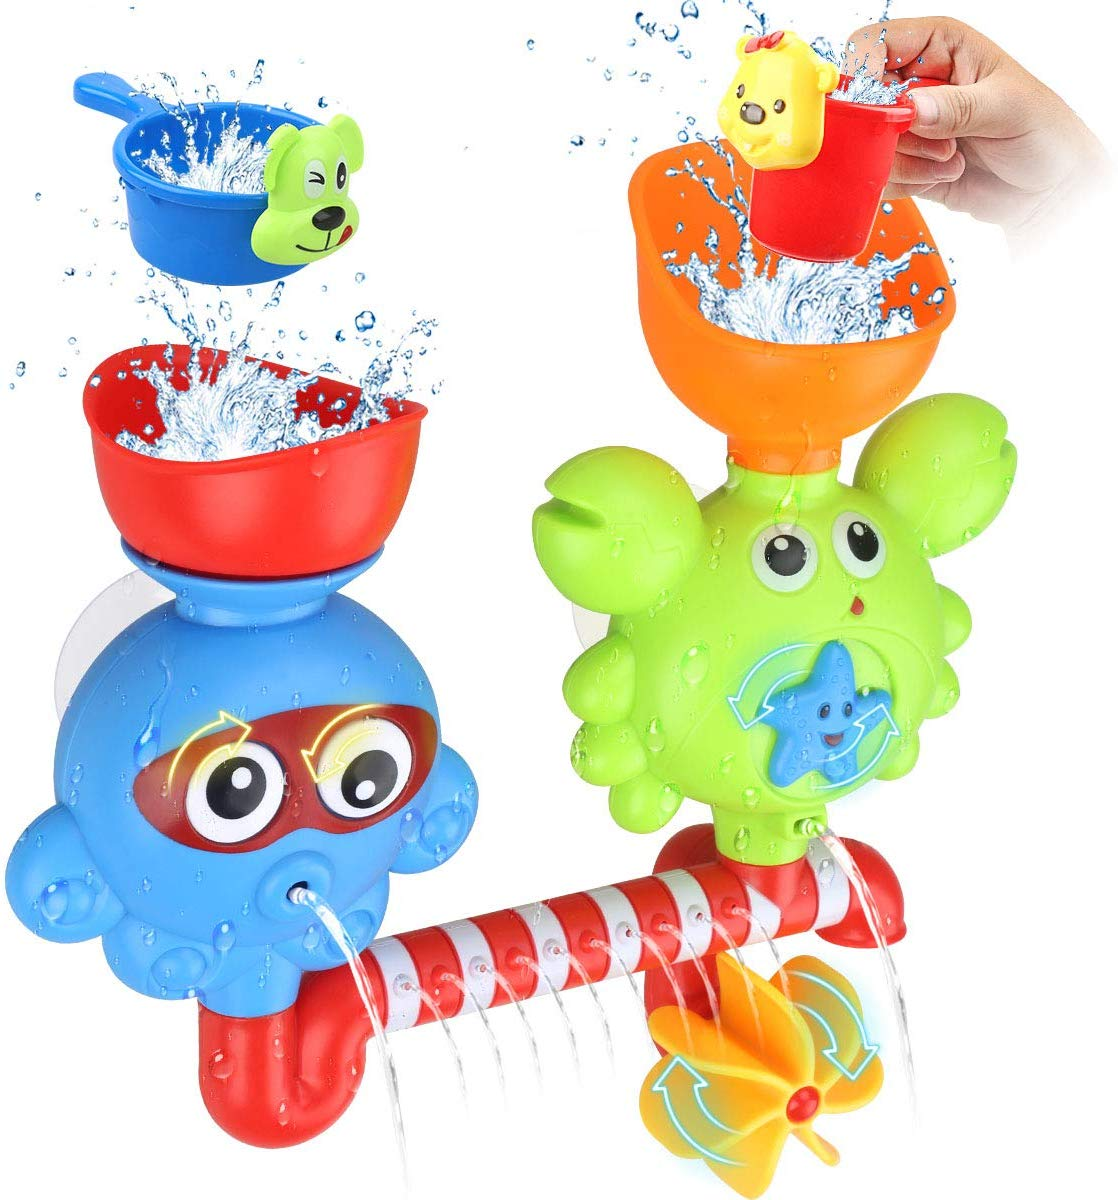 GOODLOGO Spin and Flow Waterfall Bath Toy